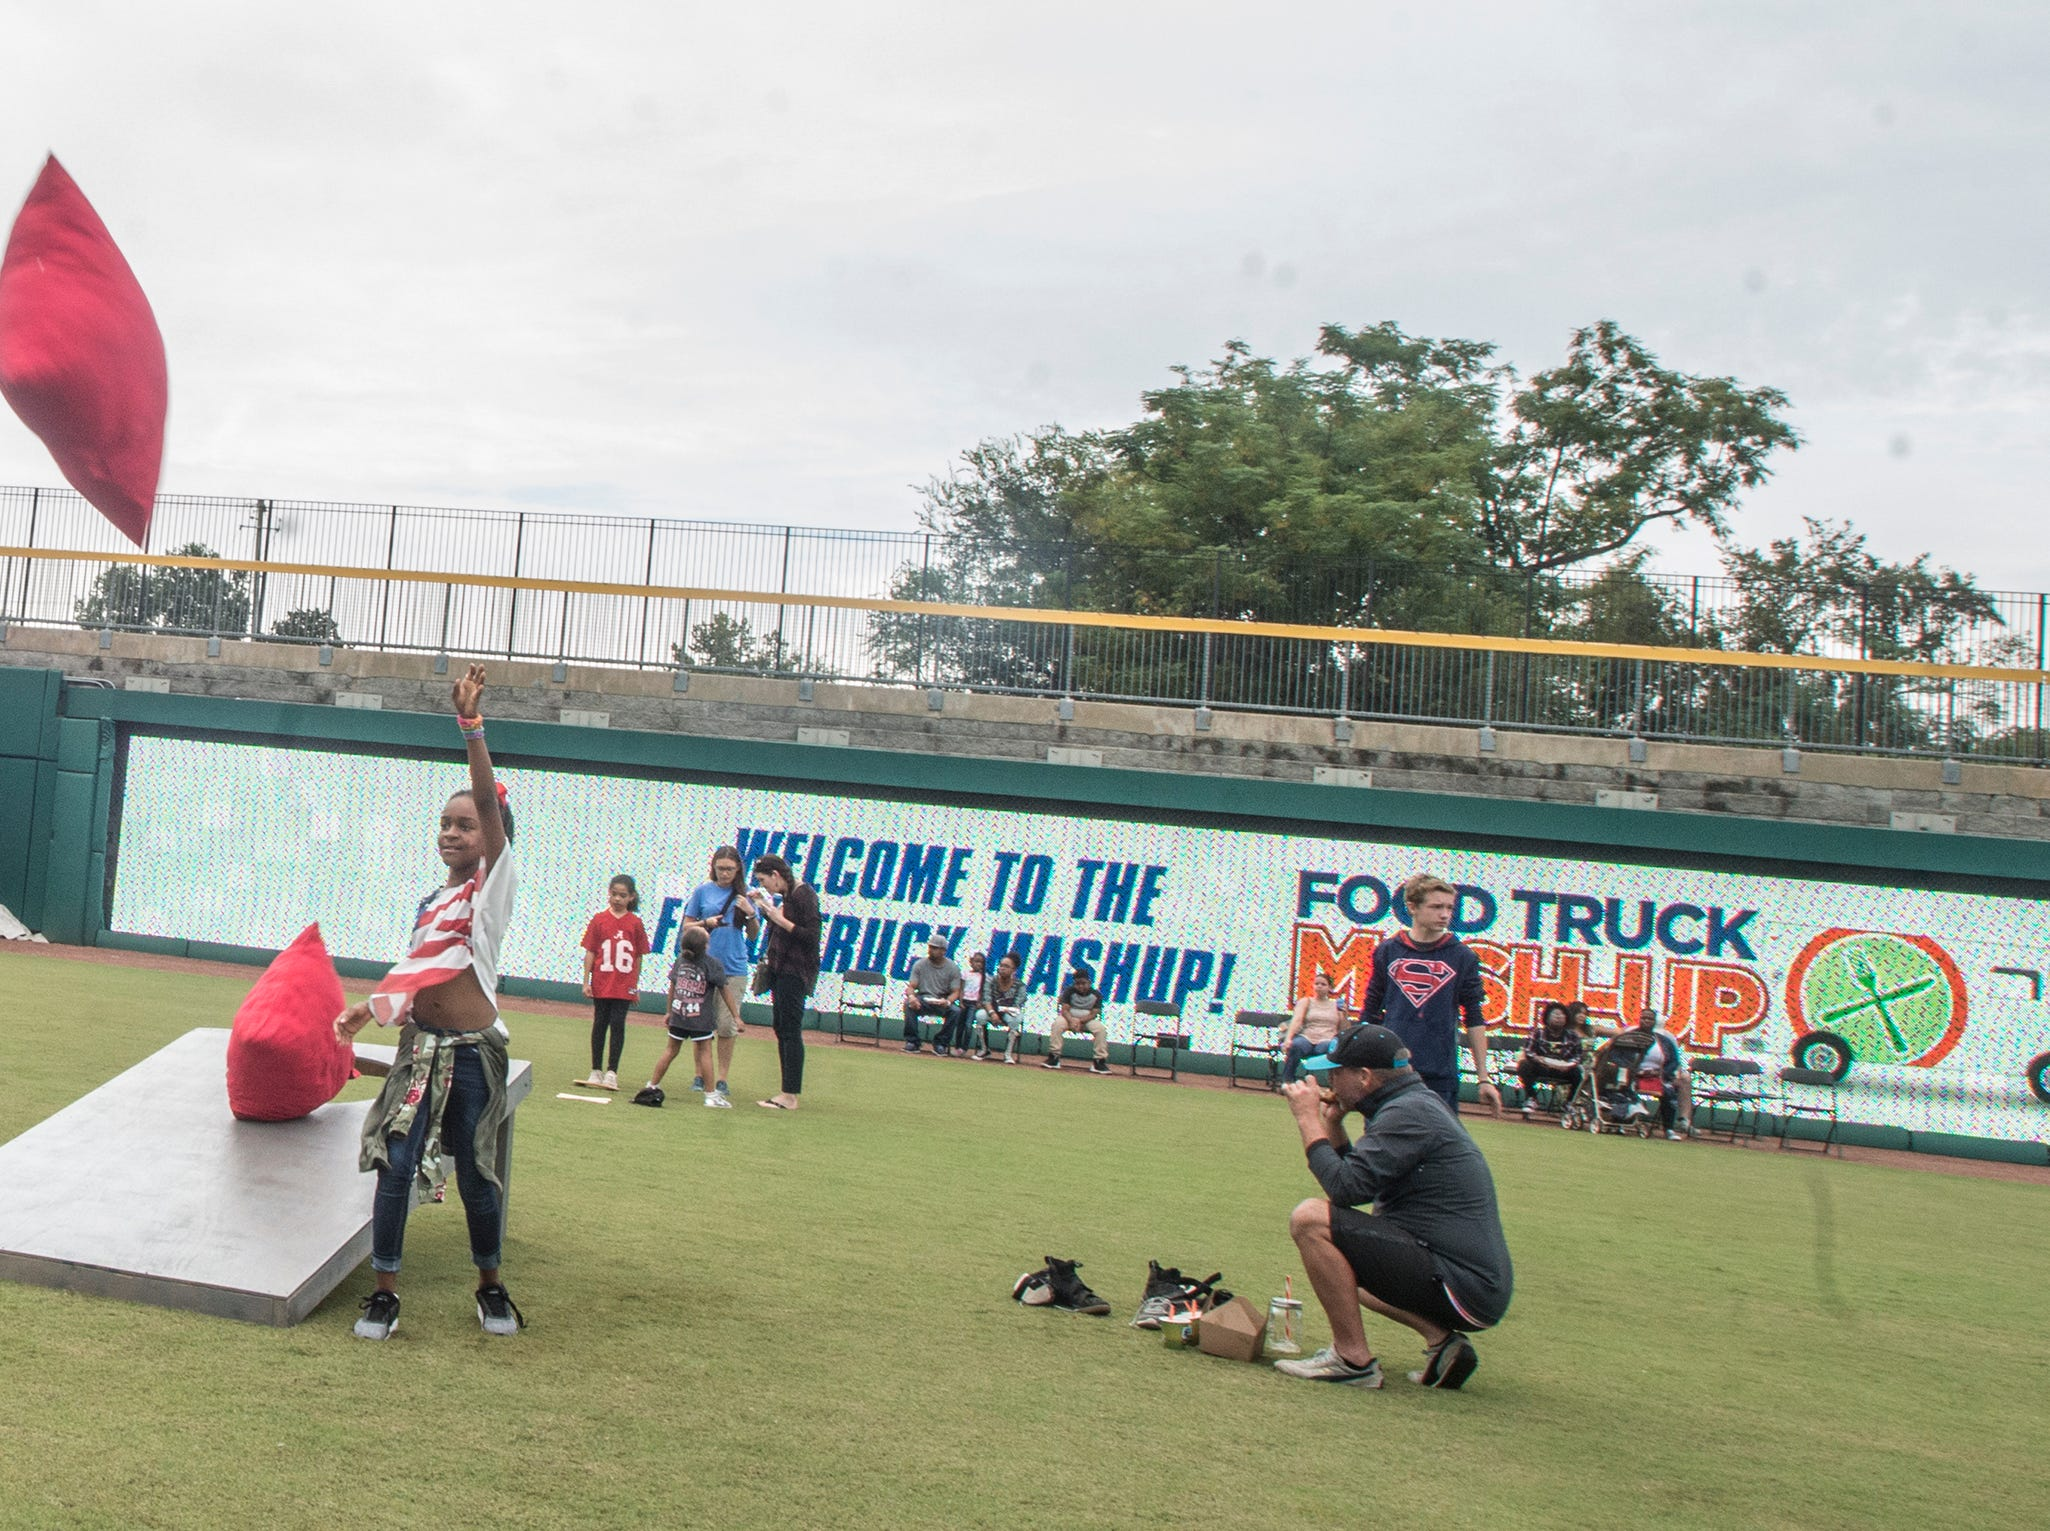 Guests play oversized games. Food Truck Mash-Up returned to Riverwalk Stadium on Saturday, Oct. 20, 2018, bringing a variety of food trucks, music and games for guests to enjoy.